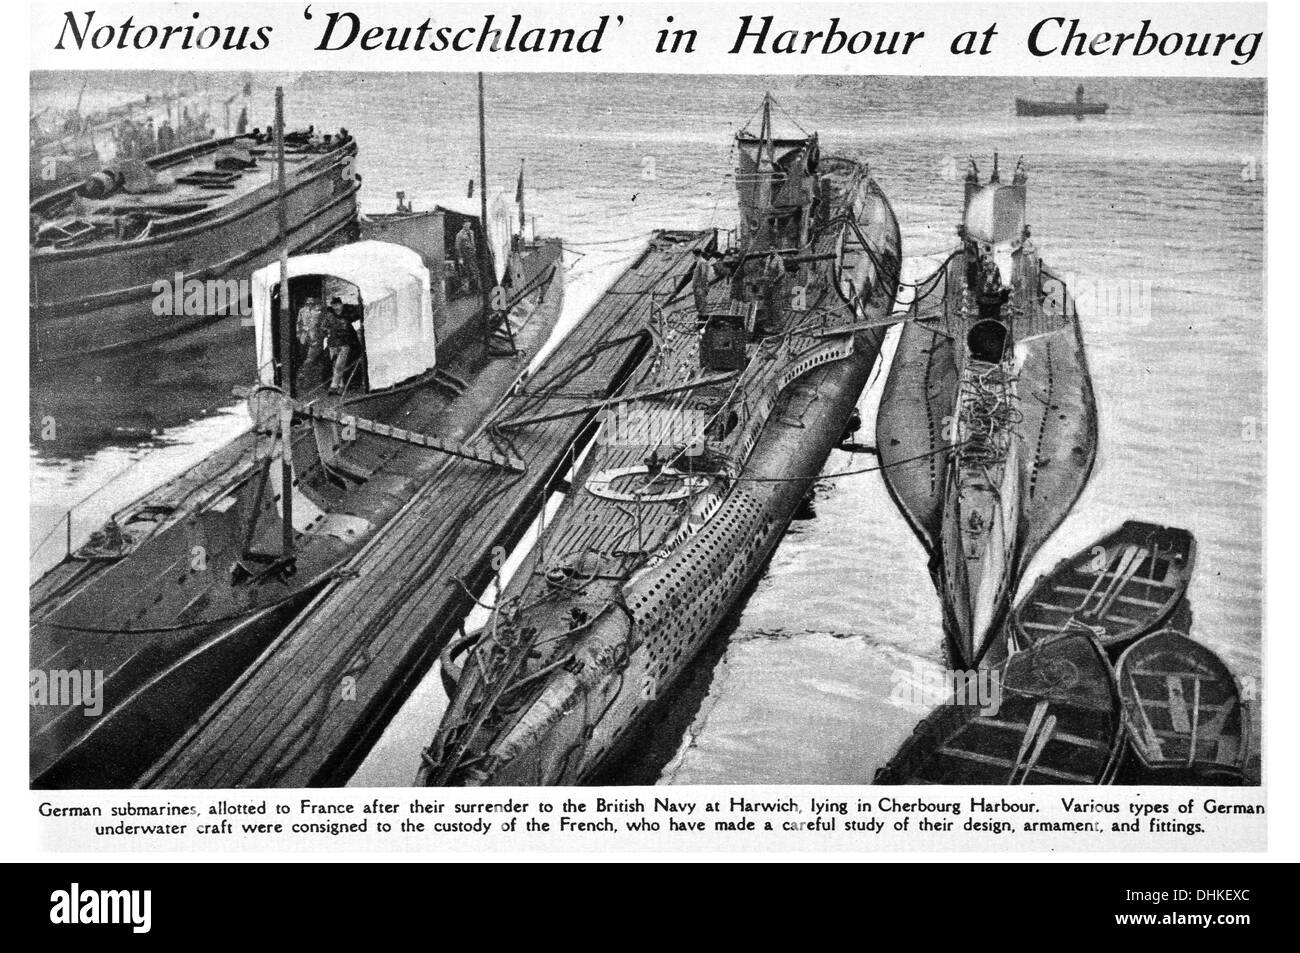 Notorious 'Deutschland in Harbour at Cherbourg German submarines, allotted to France after their surrender to the British Navy - Stock Image